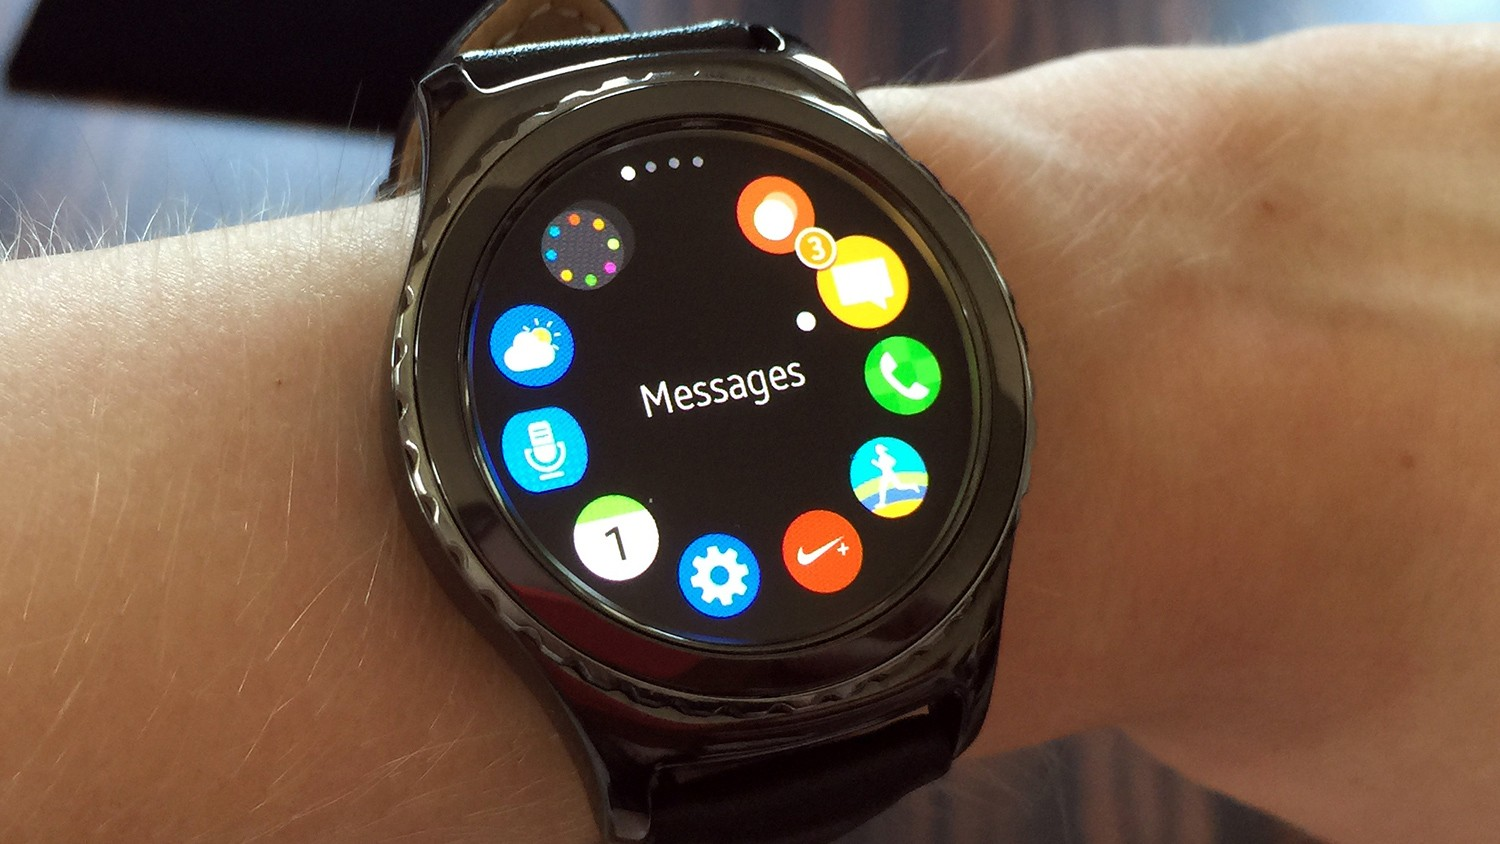 Meloso lino pájaro  Samsung to make Gear S2 available to iOS users as well - Compare  Smartwatches - Smartwatch News, Reviews and comparisons